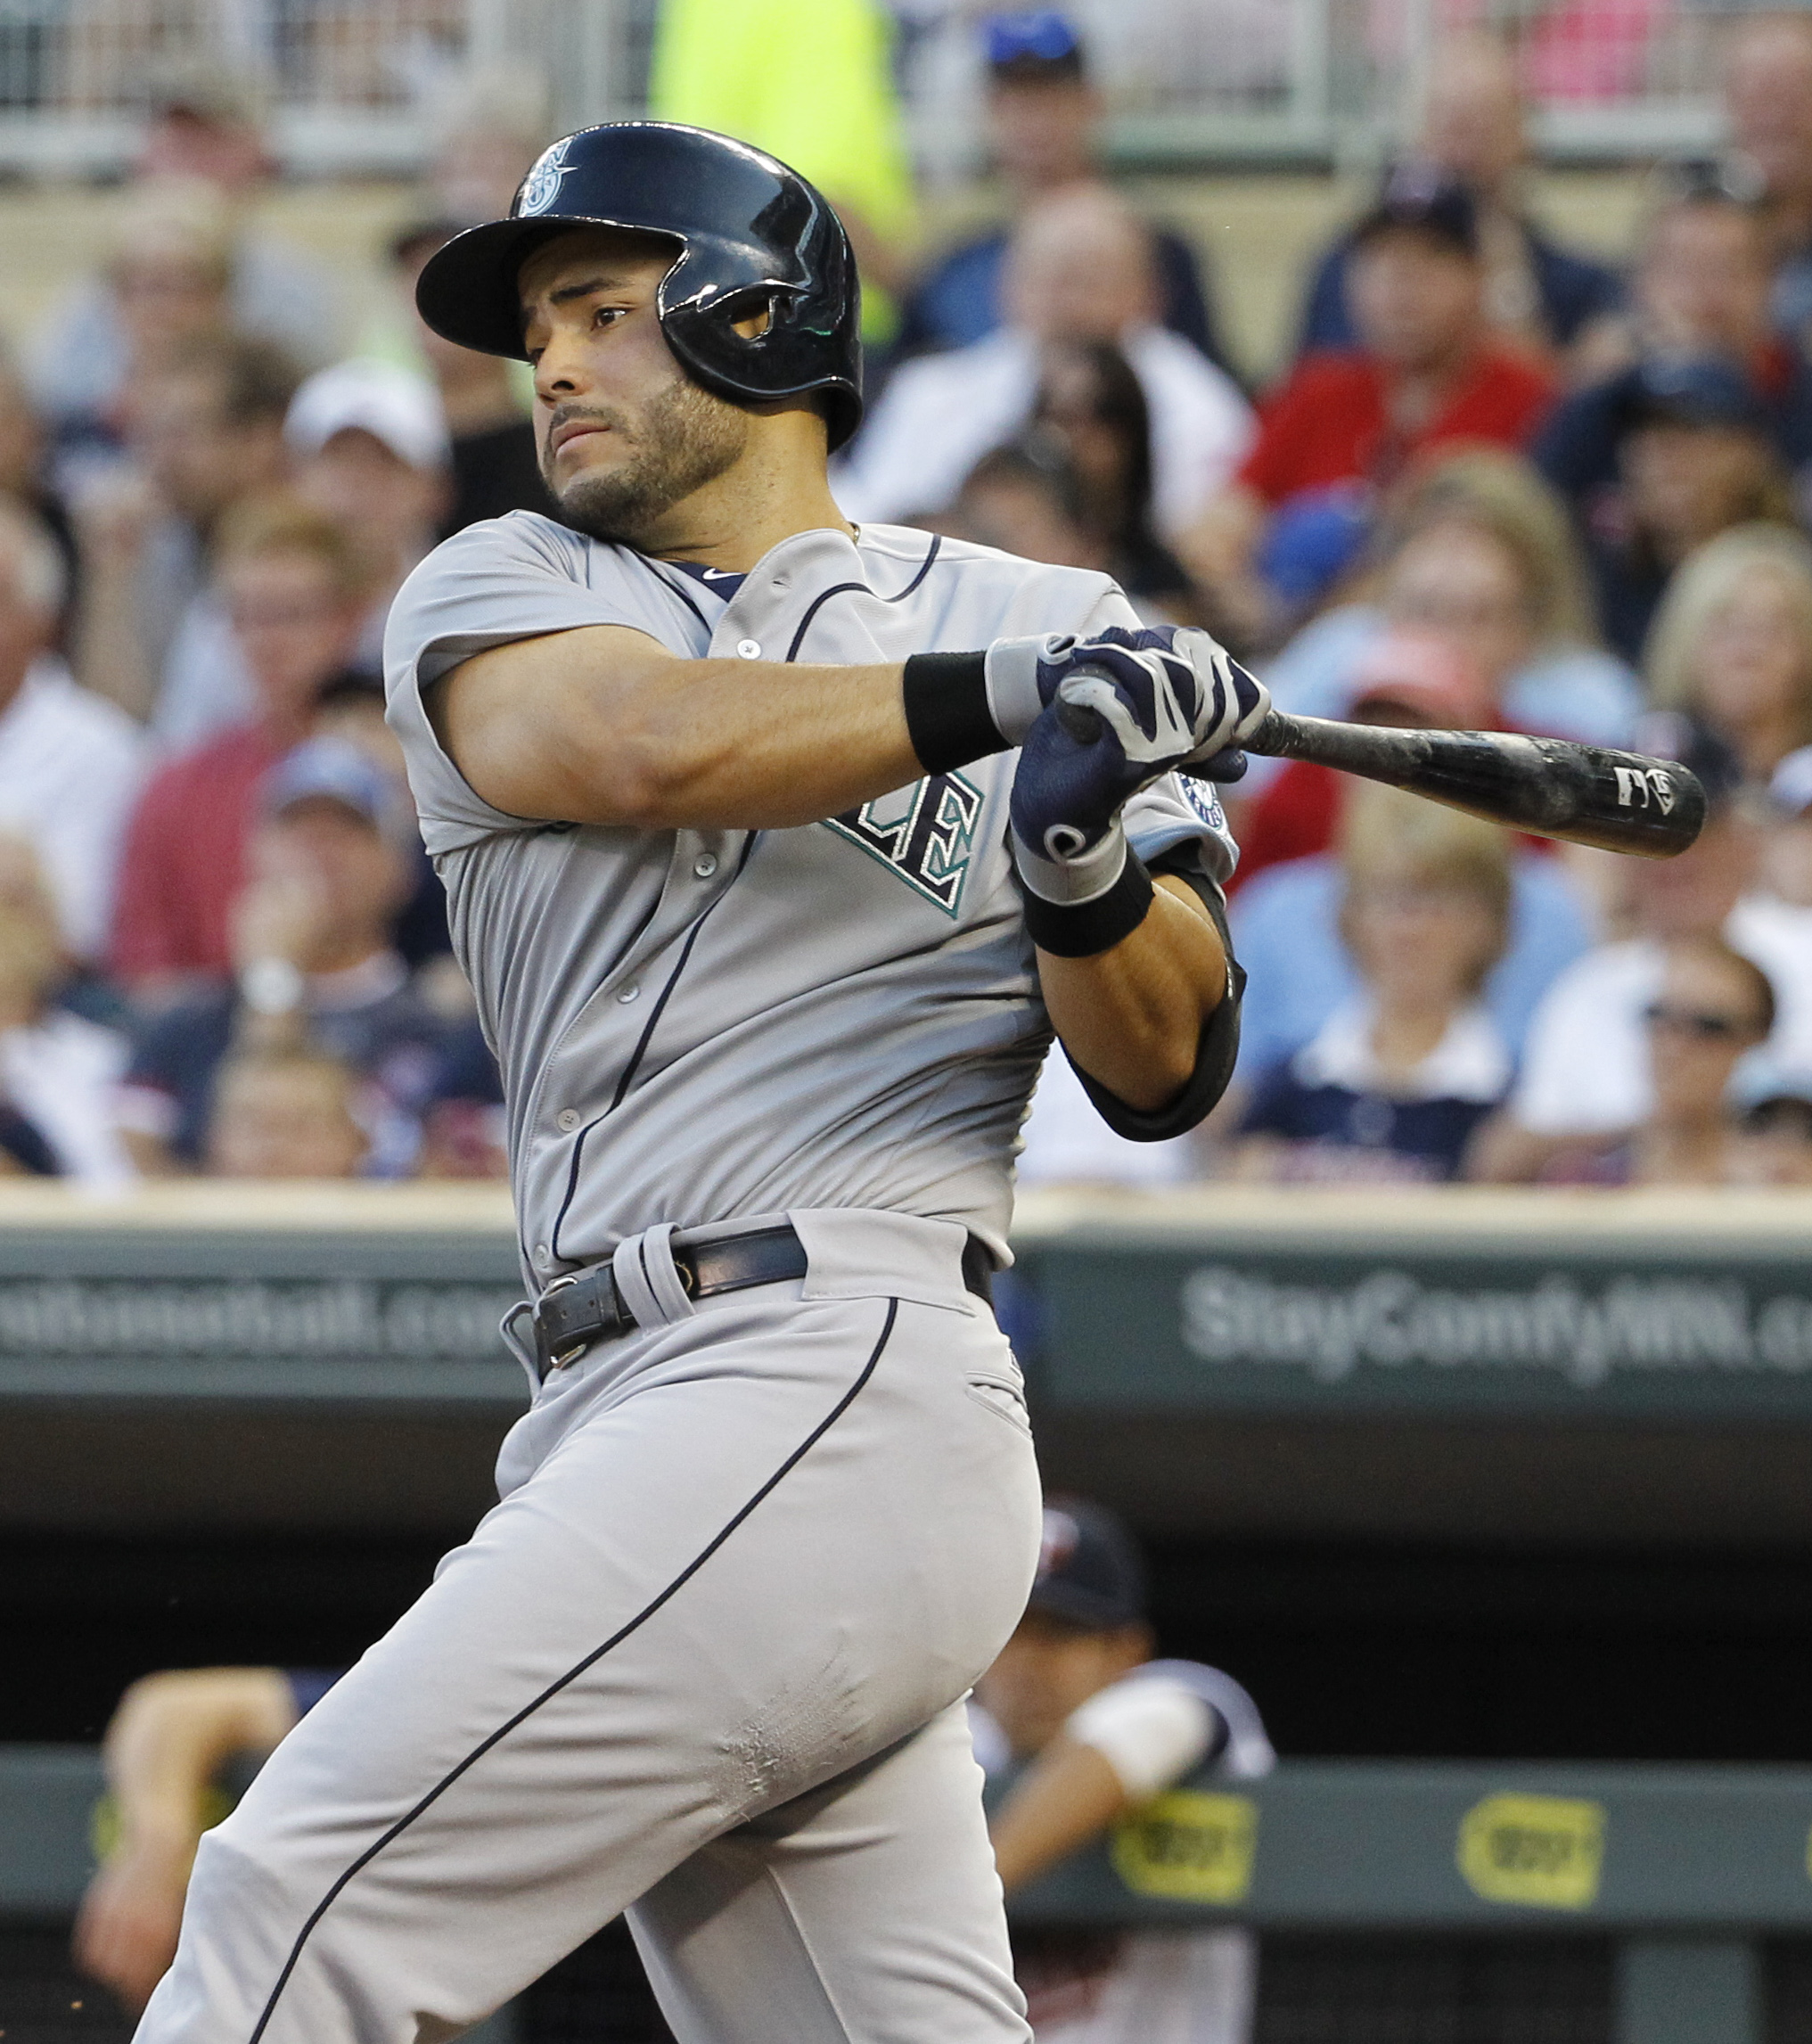 Seattle Mariners' Jesus Montero follows through on and RBI double off Minnesota Twins starting pitcher Tommy Milone during the fourth inning of a baseball game in Minneapolis, Friday, July 31, 2015. (AP Photo/Ann Heisenfelt)